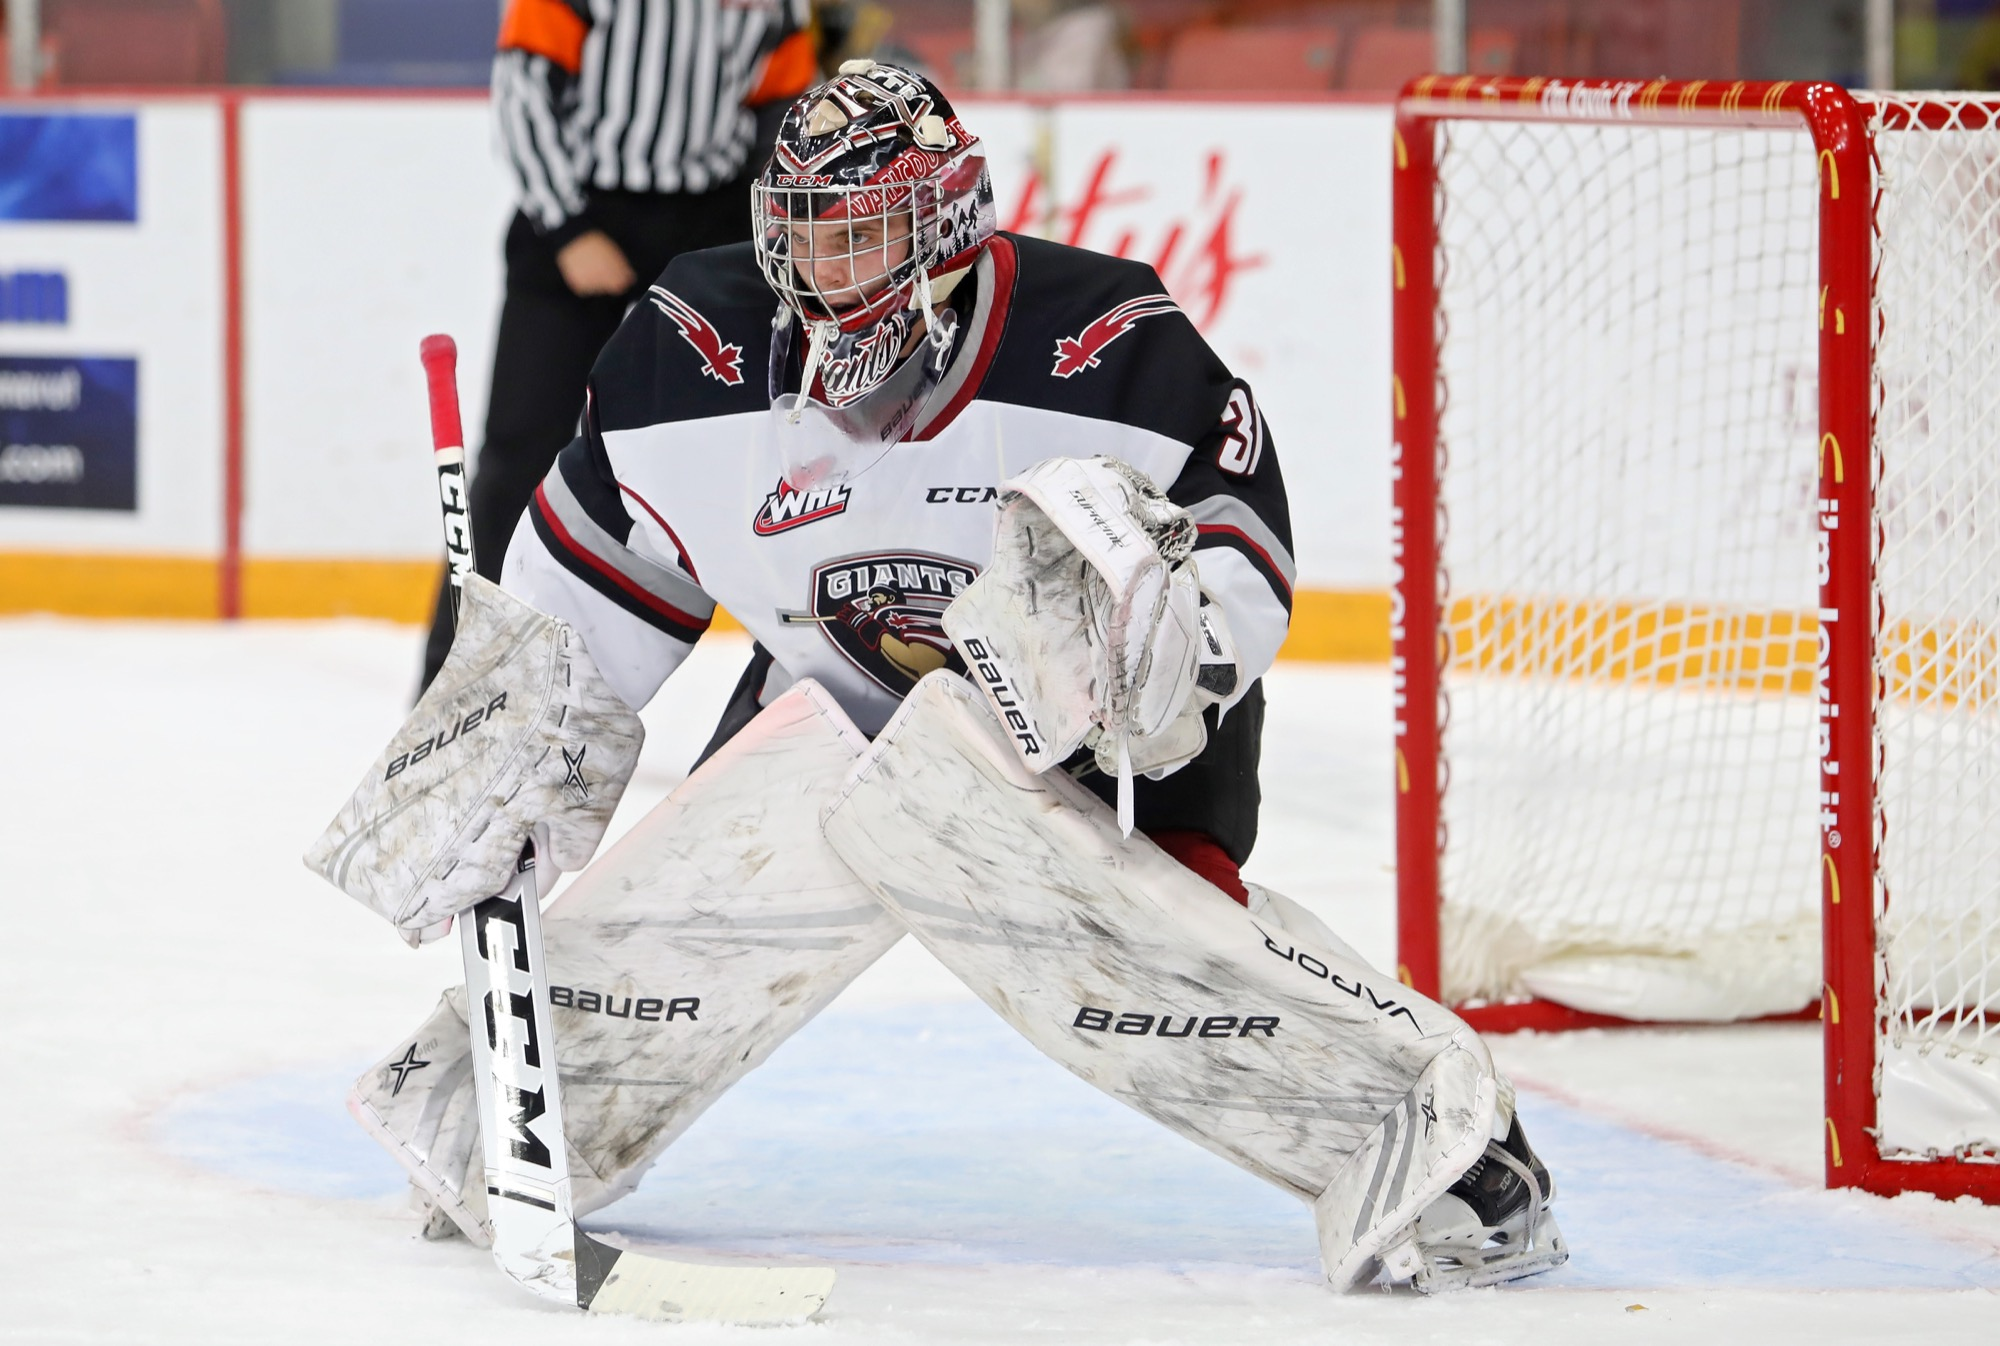 Goalie Trent Miner of the Vancouver Giants, shown watching the play during Western Hockey League action against the Brandon Wheat Kings at Westoba Place on Oct. 4, 2019, is in camp with the American Hockey League's Colorado Eagles.